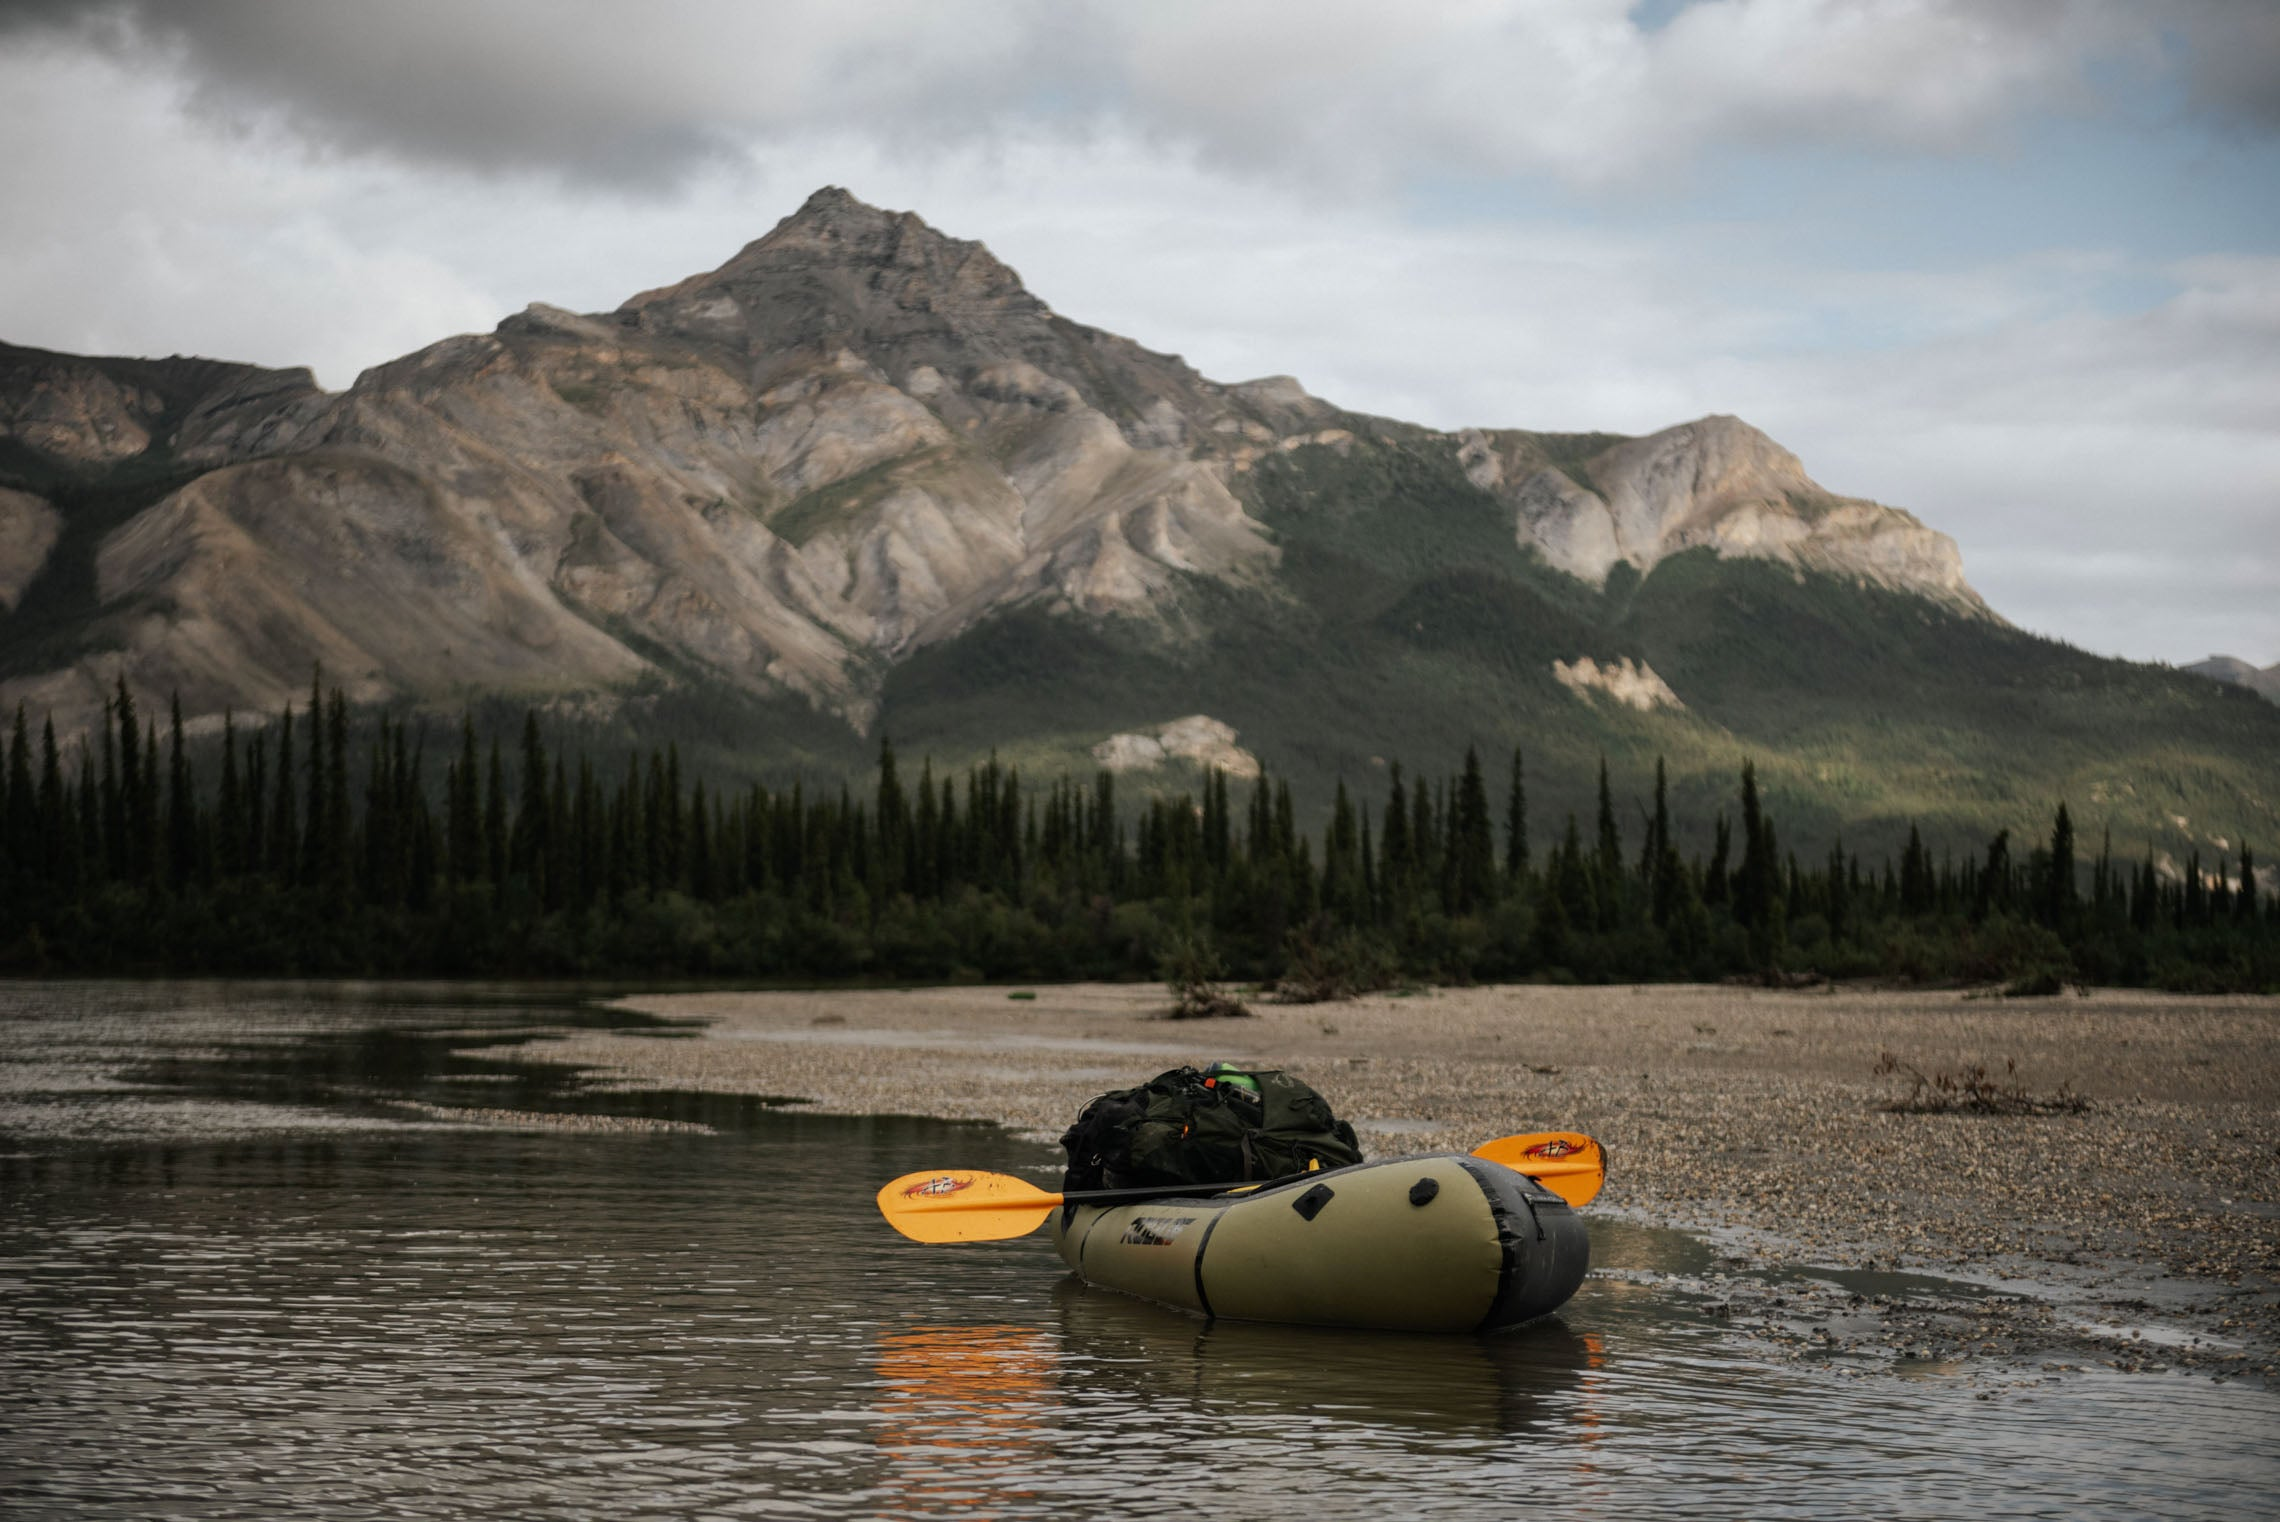 Packraft at the shore with arctic mountain in background